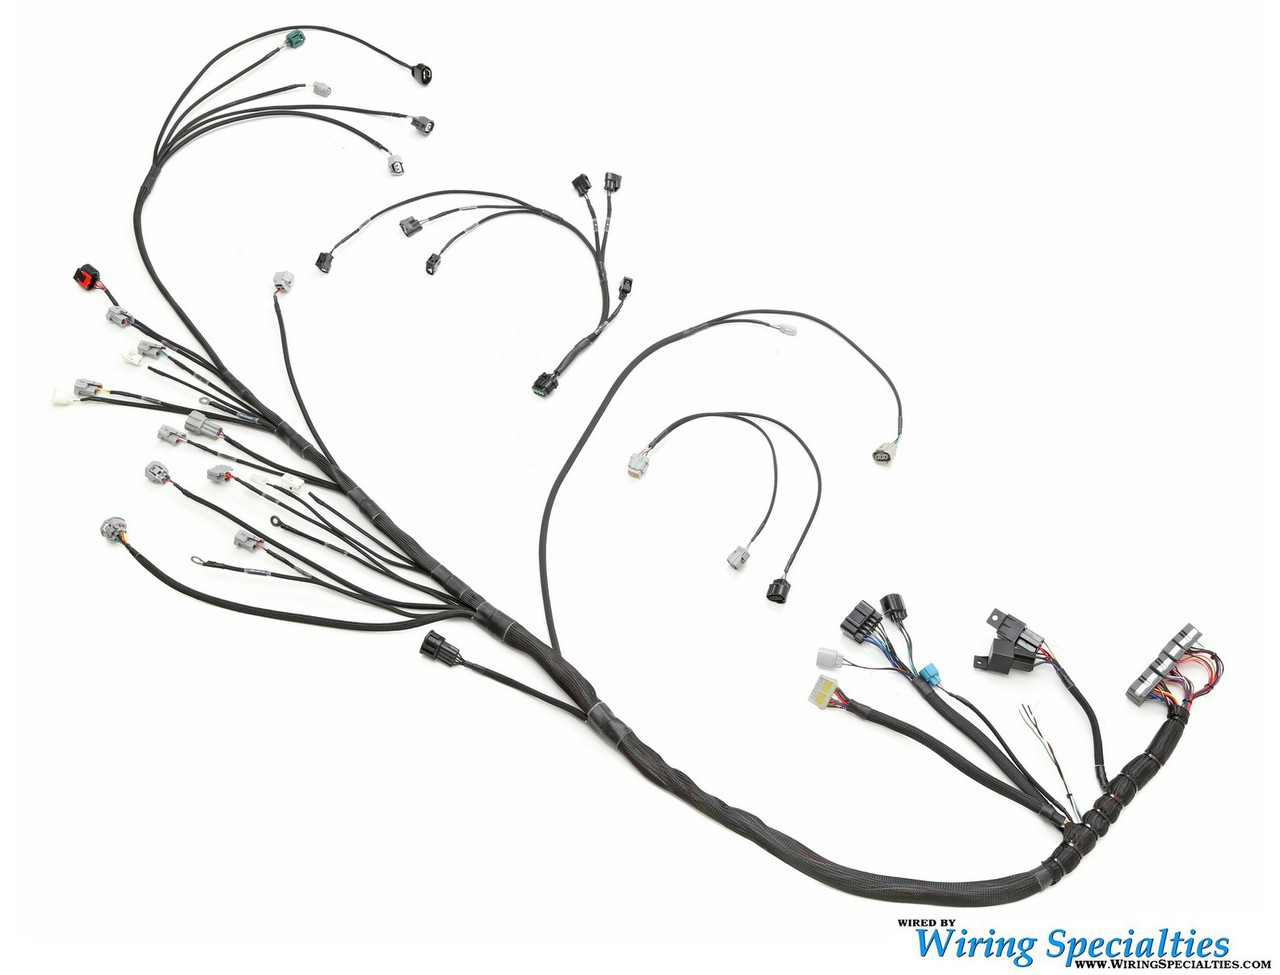 Wiring Specialties 1jzgte E36 Wiring Harness Je Import